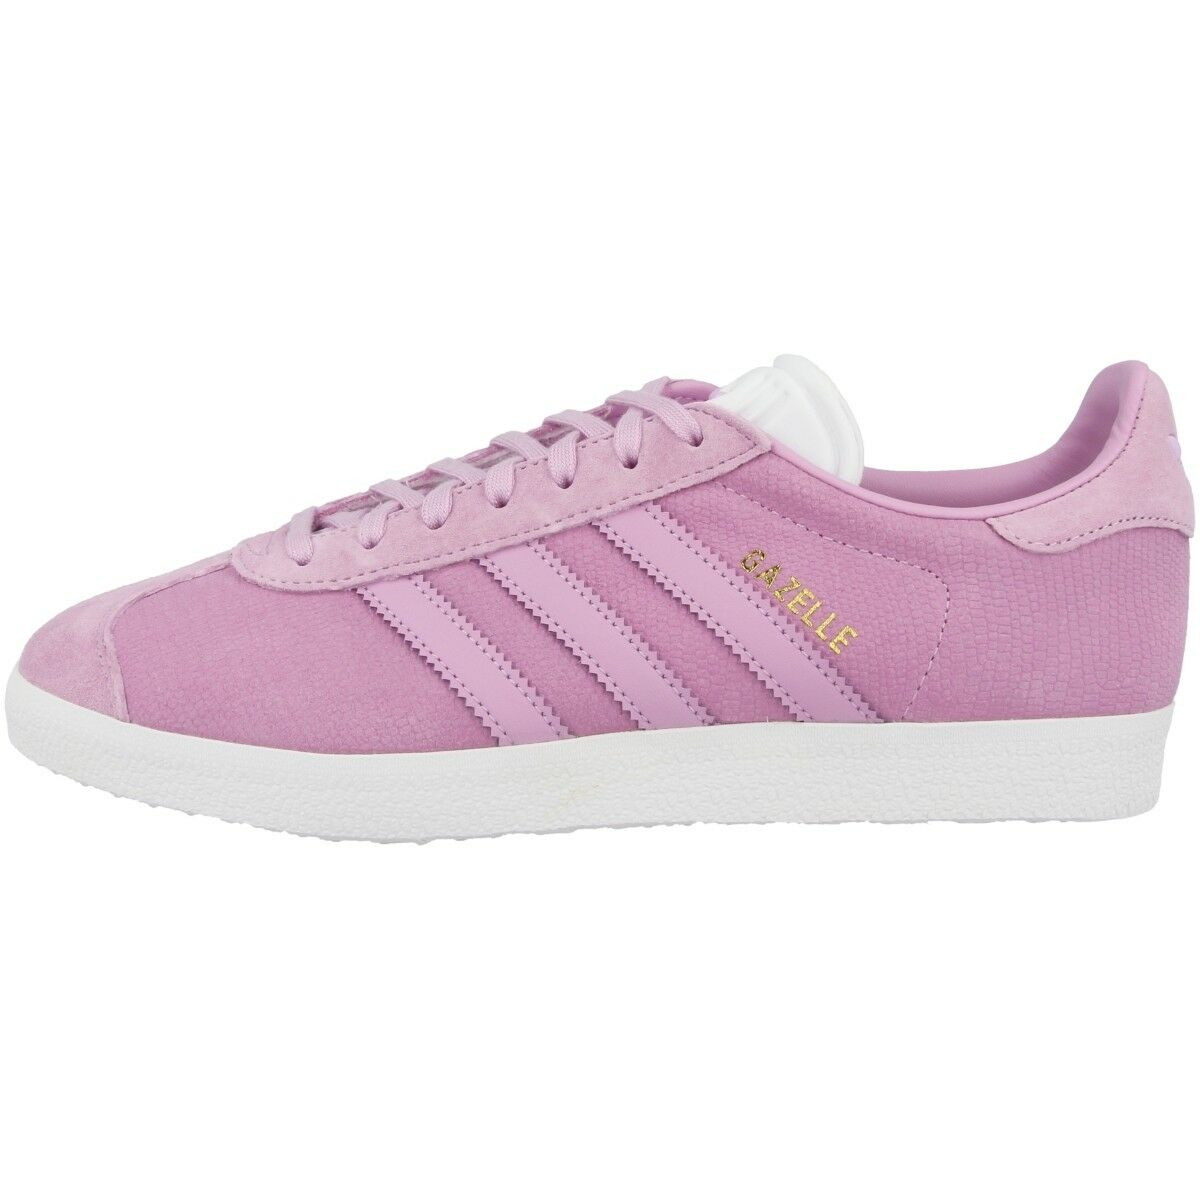 Adidas Gazelle Women Originals Trainers shoes Transparent purplec White